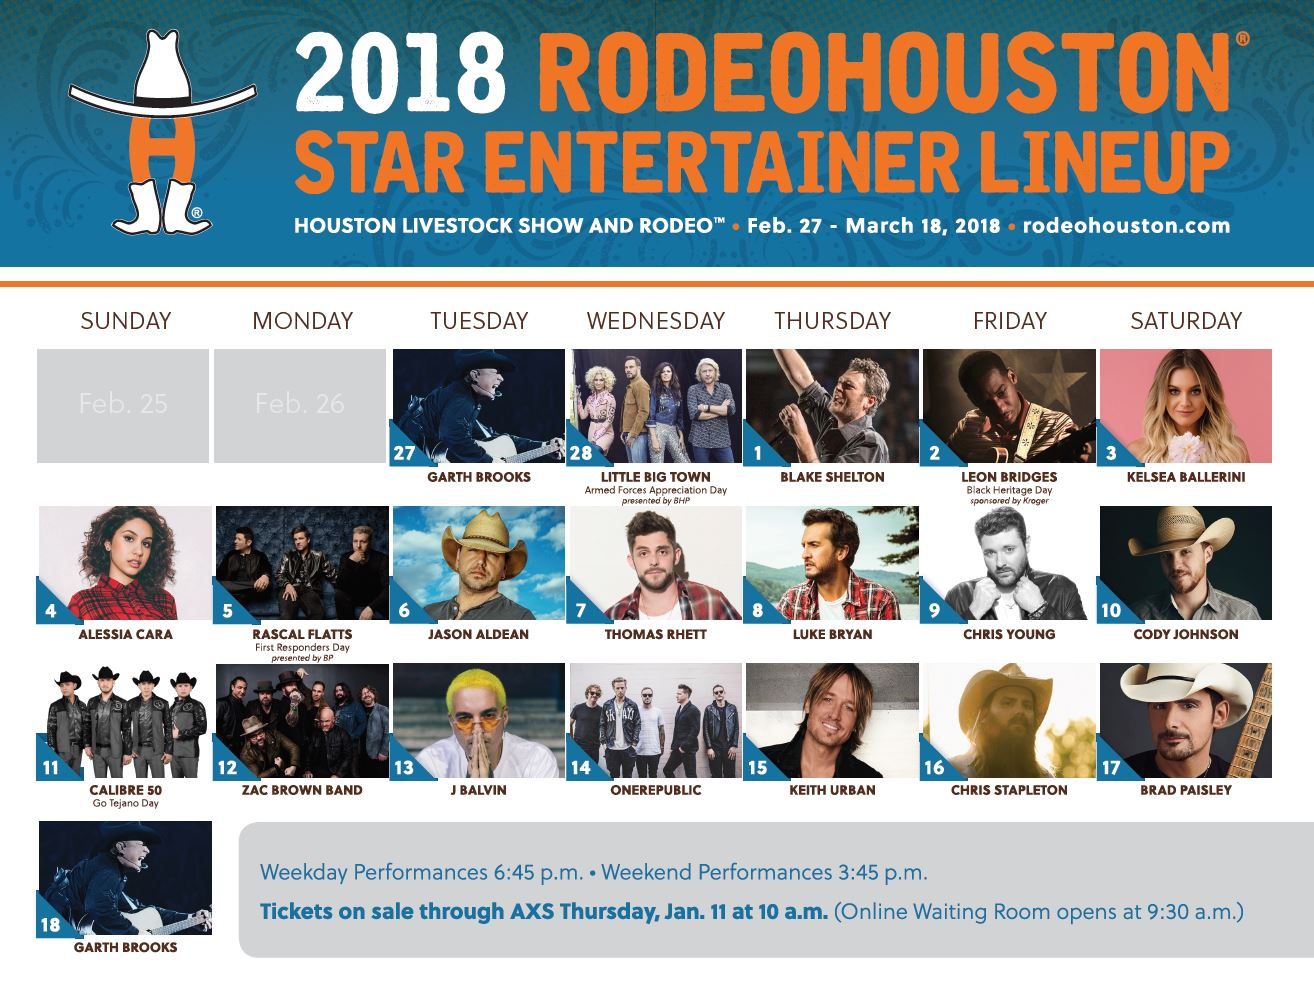 Rodeo Houston 2018 lineup. (Courtesy: Rodeo Houston)